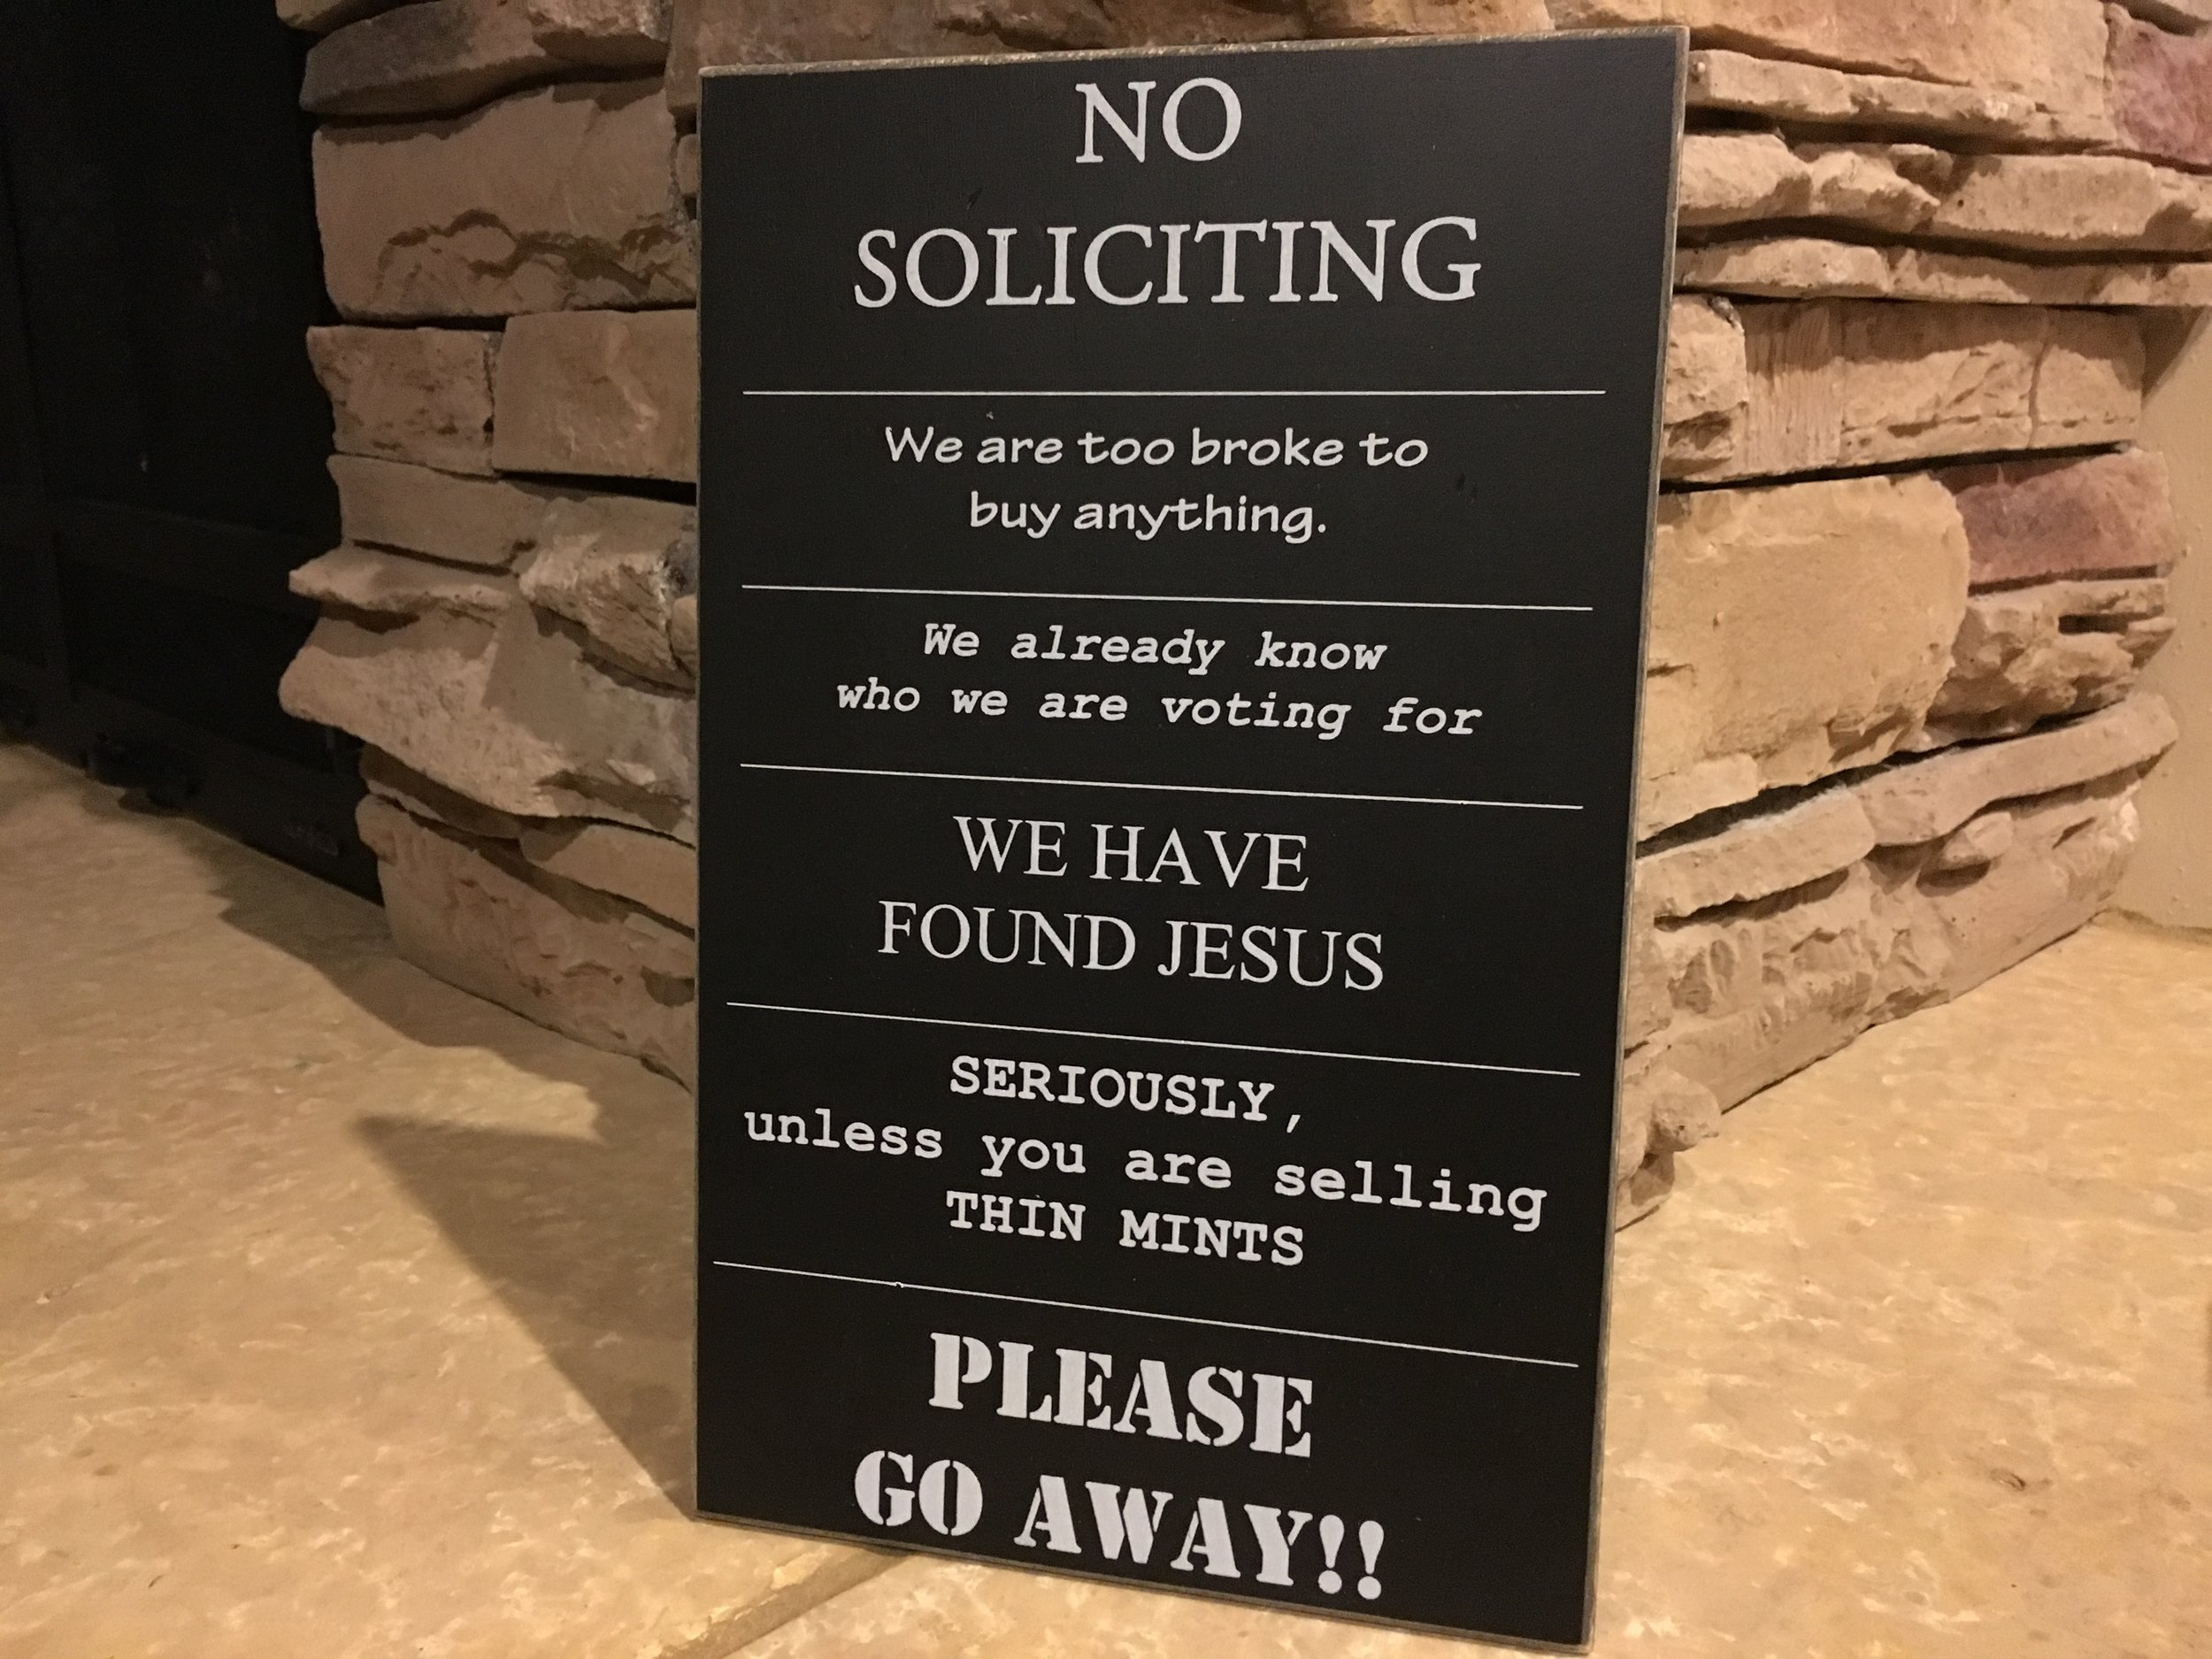 Instagram Message: It's been days and I still haven't gotten my hands on Thin Mints. Are solicitors reading the sign wrong?